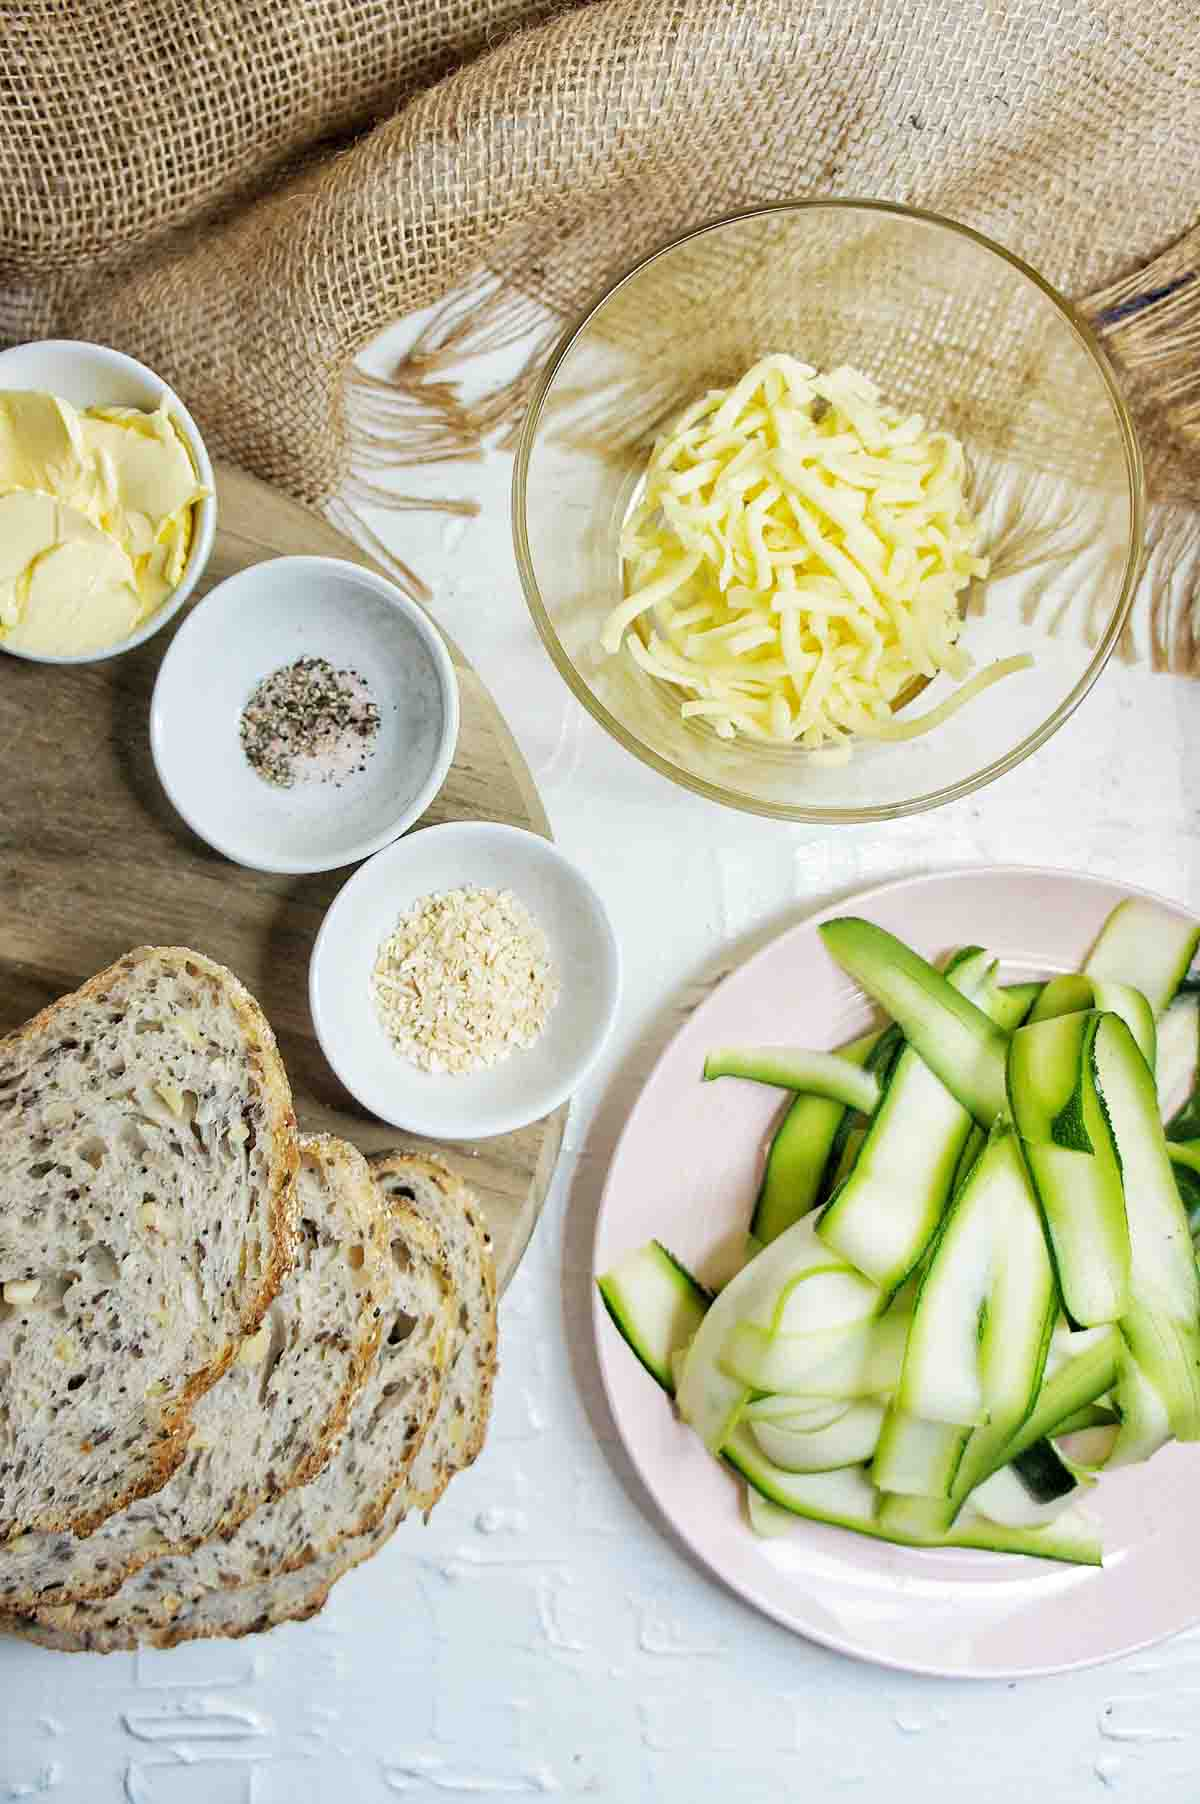 Ingredients set out to make Zucchini Grilled Cheese